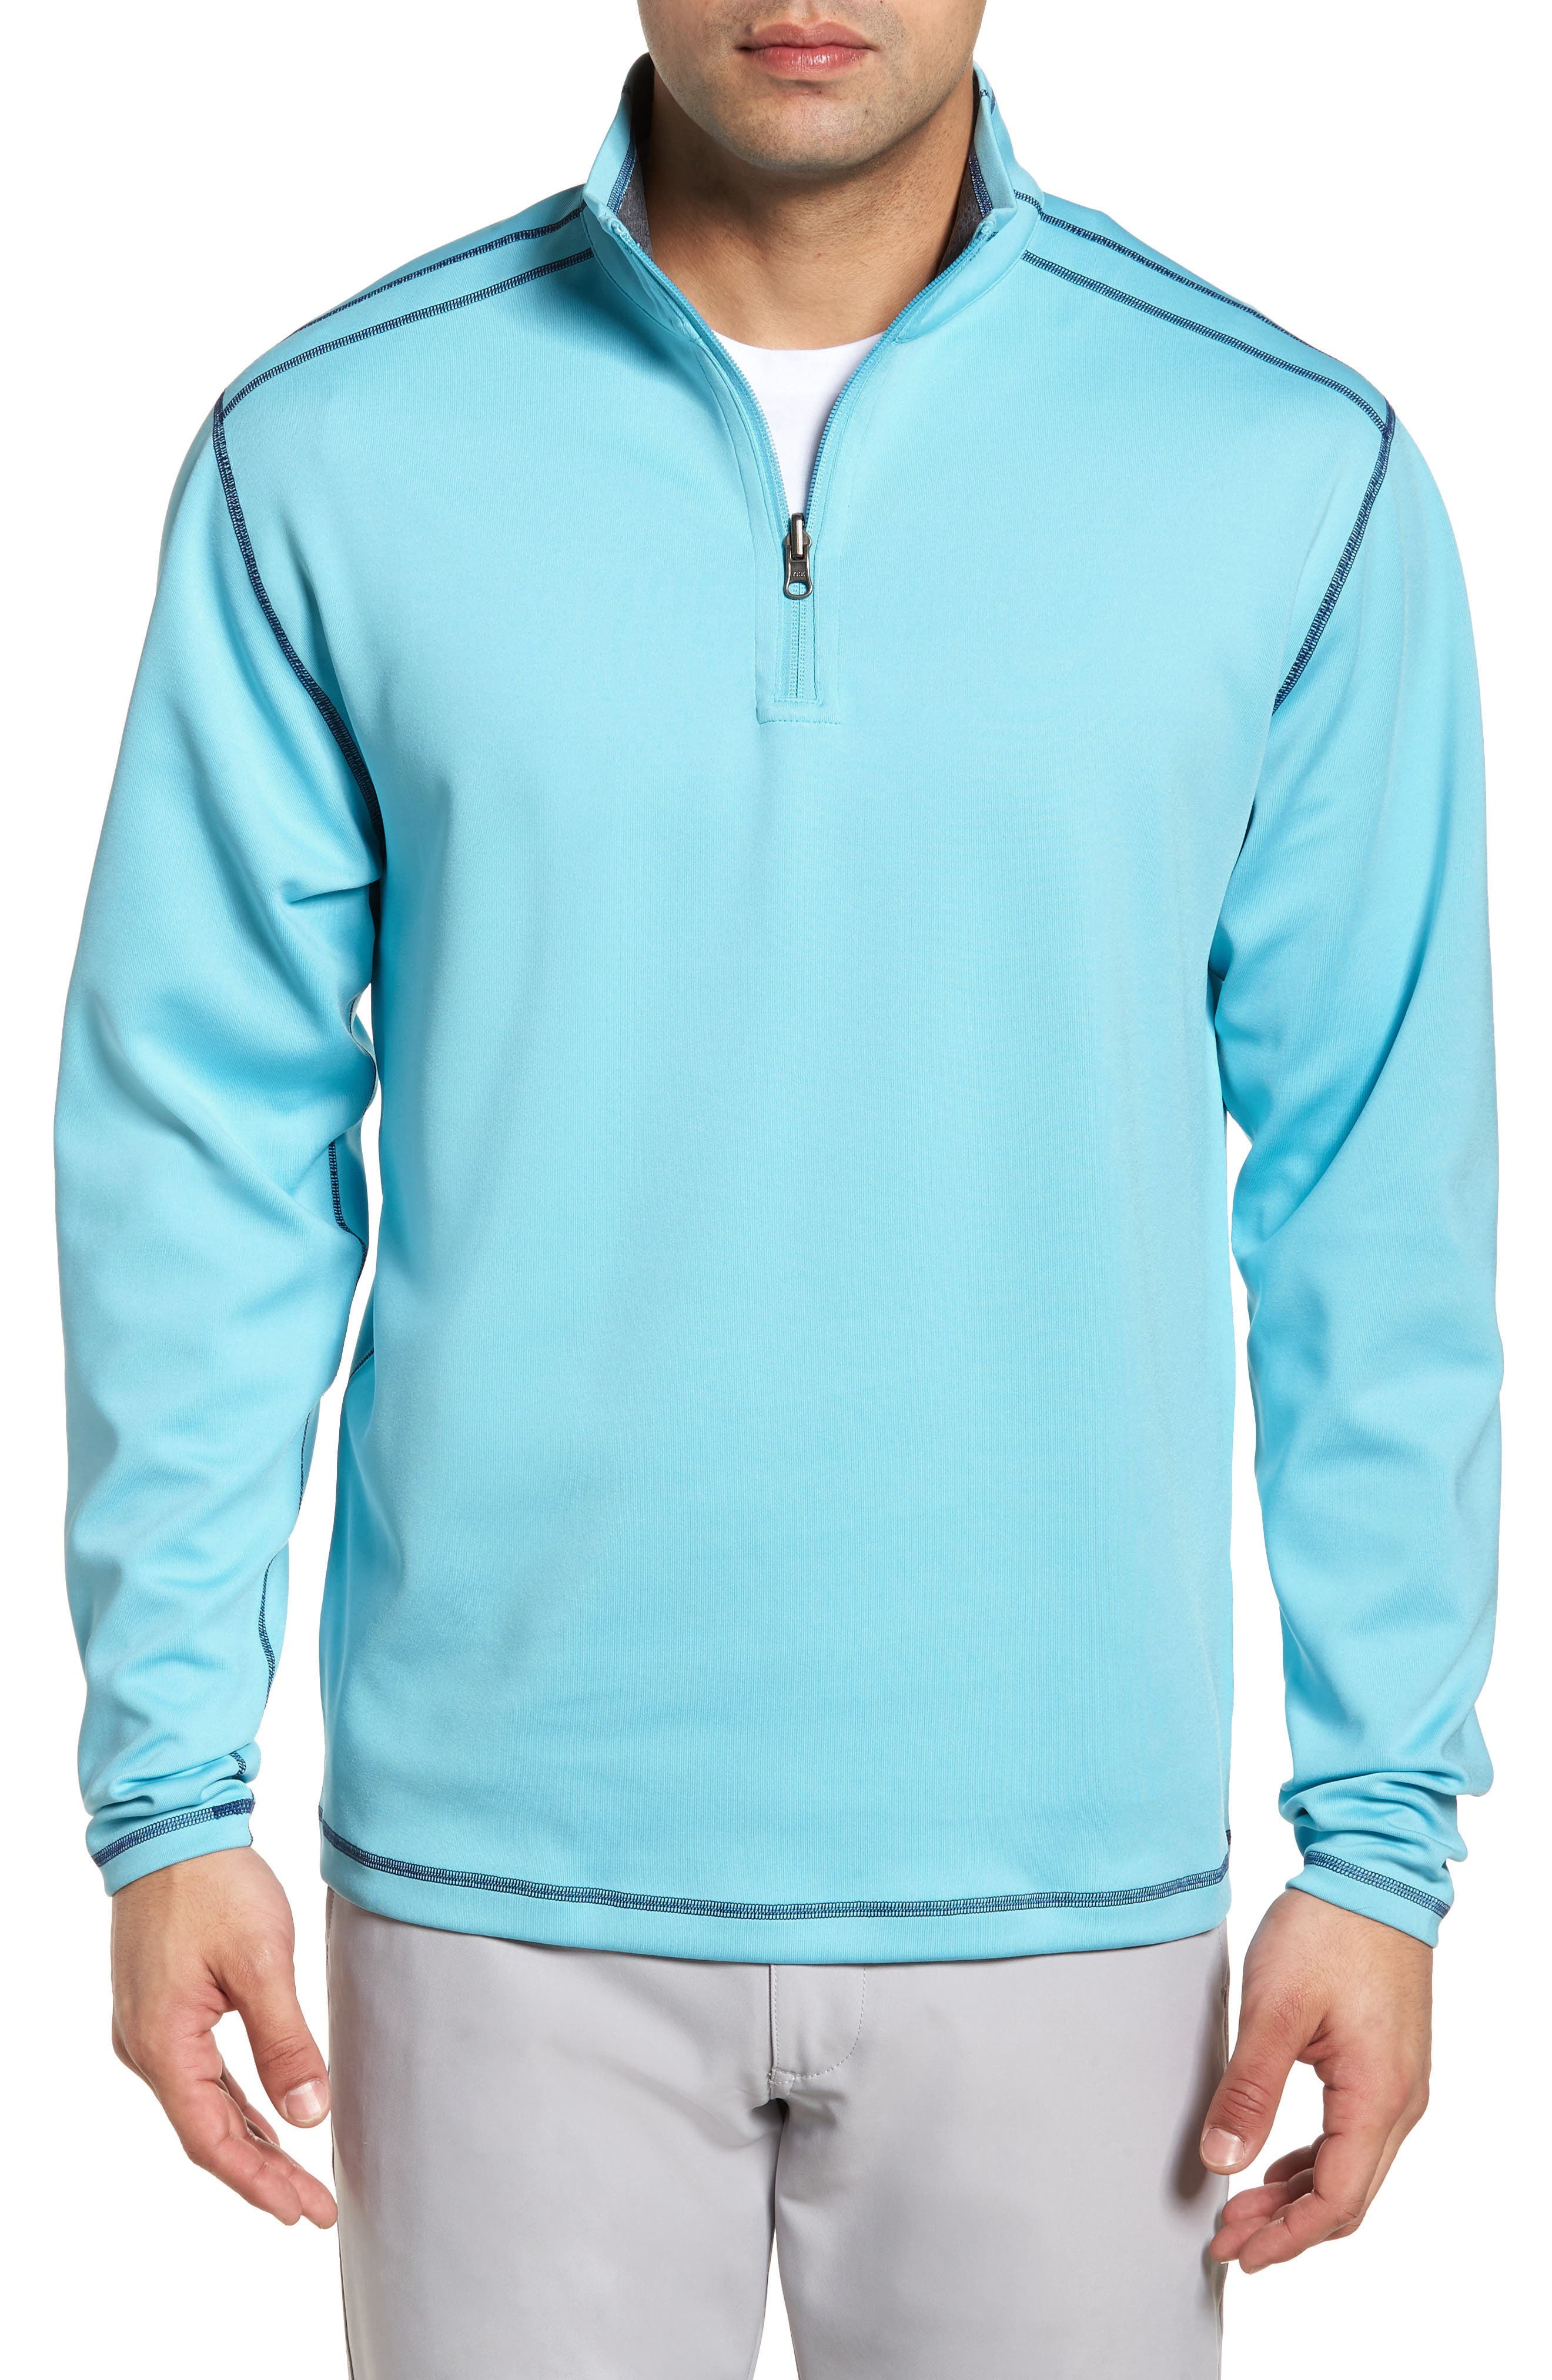 Alternate Image 1 Selected - Cutter & Buck Evergreen Classic Fit DryTec Reversible Half Zip Pullover